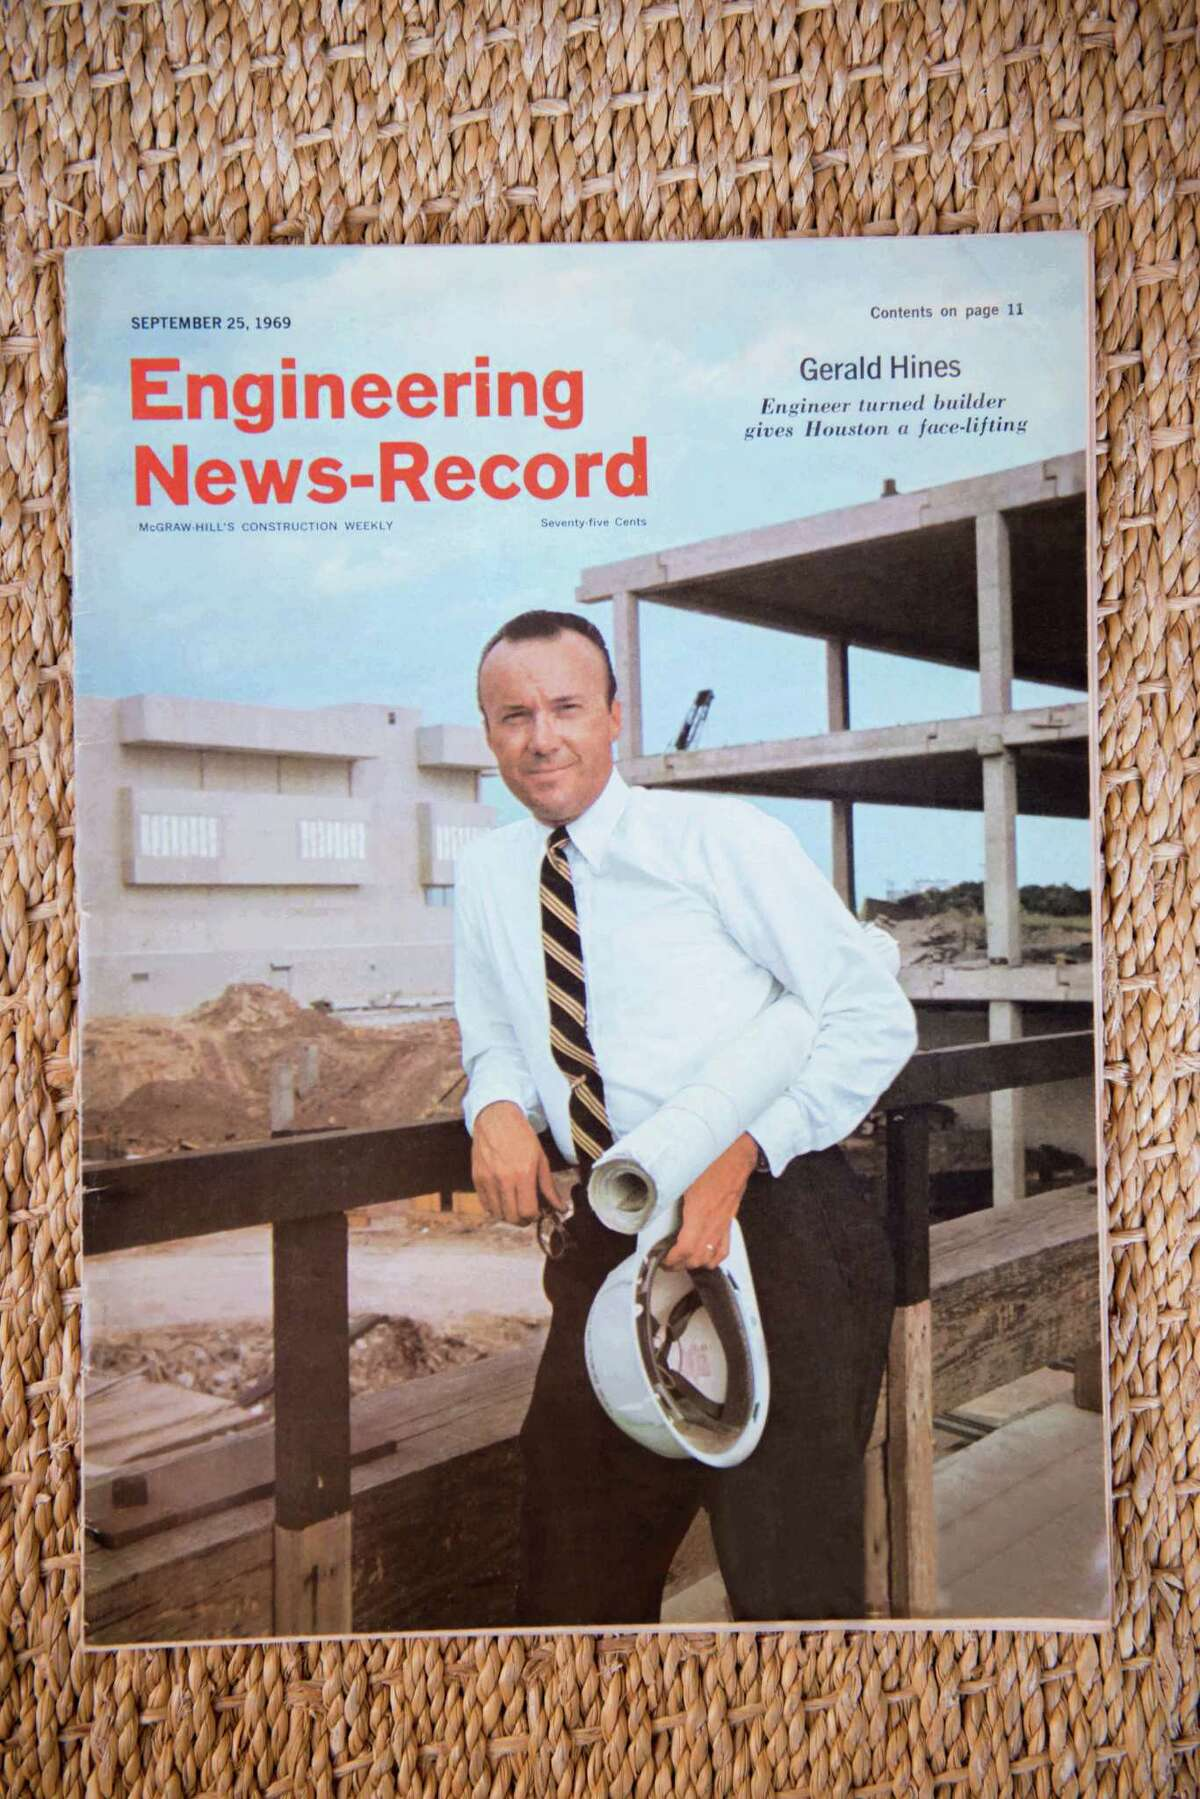 Gerald D. Hines was featured on the cover of Engineering News-Record in 1969, the same year his firm built One Shell Plaza, still the tallest lightweight concrete building in the world.